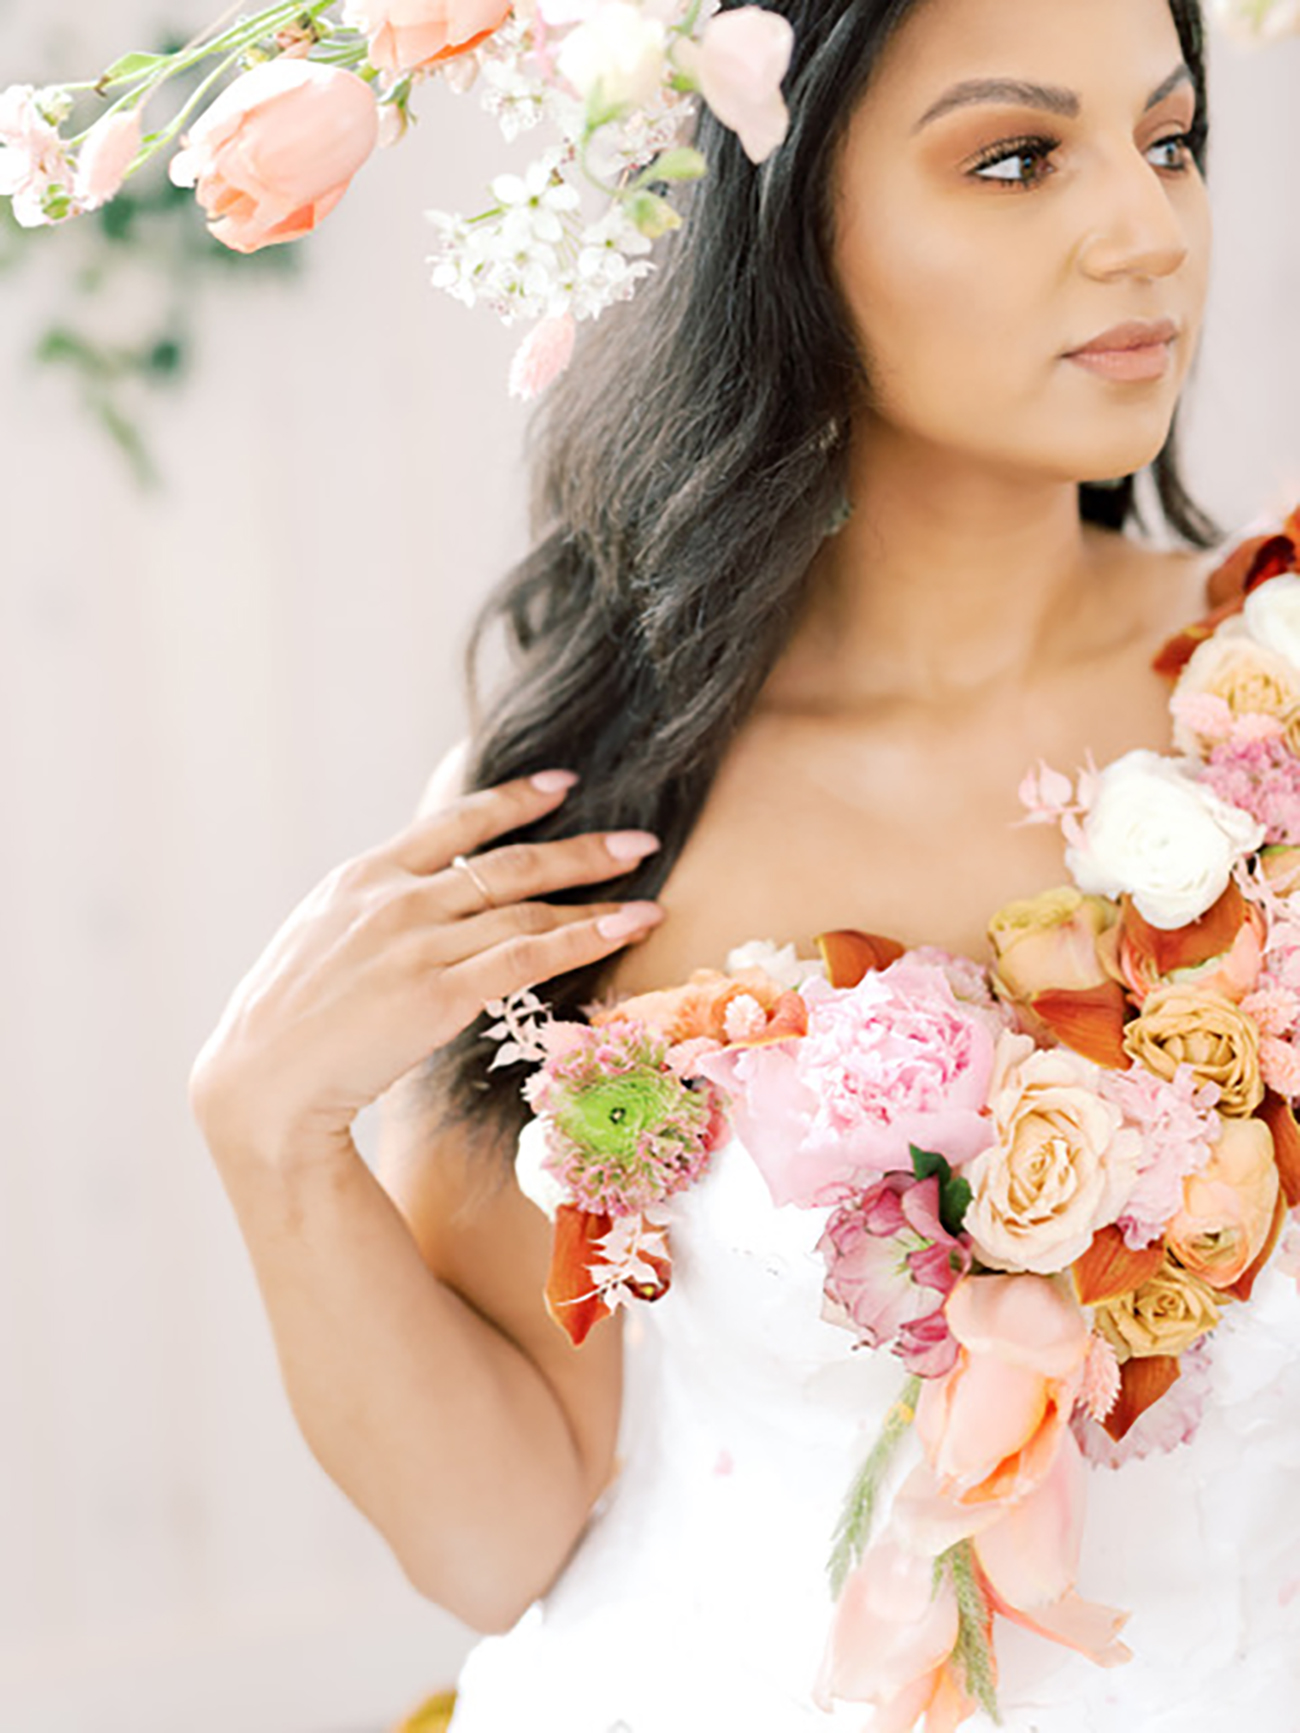 Ready To Wear Floral Creations You Can Rock In Lieu Of A Bouquet